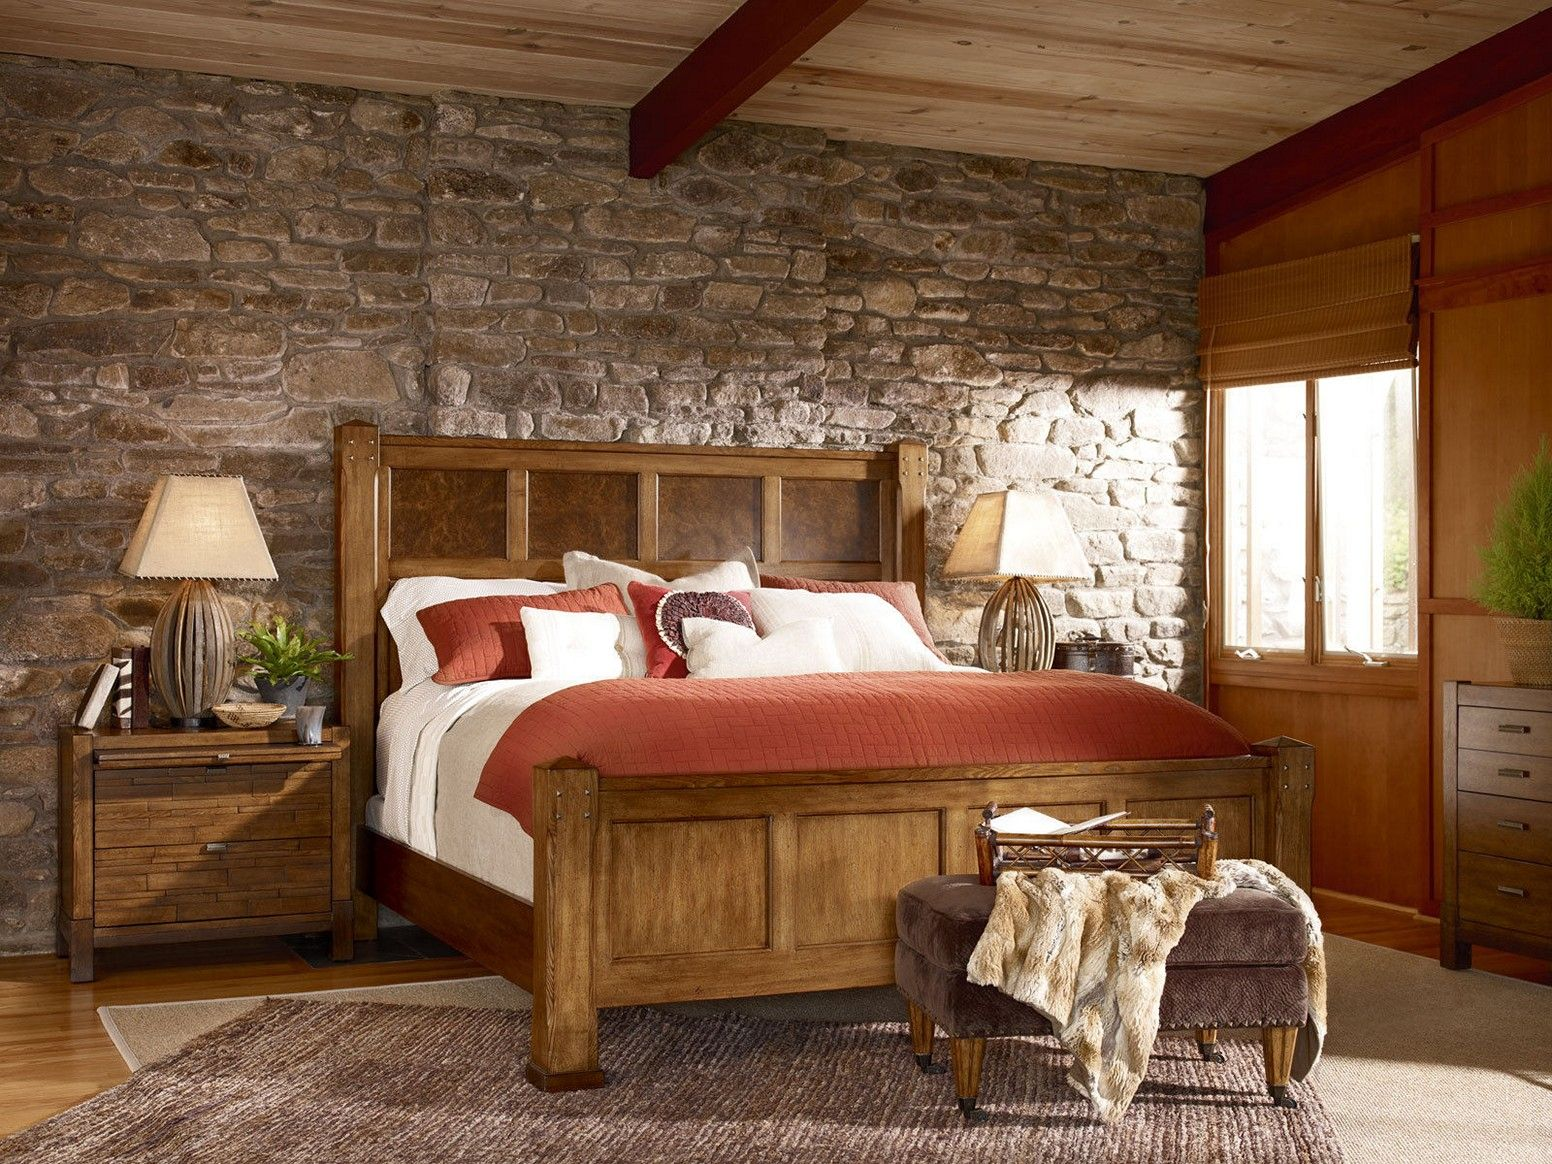 Interior Rustic Country Bedroom Ideas rustic country bedroom decorating ideas interior decor ideas